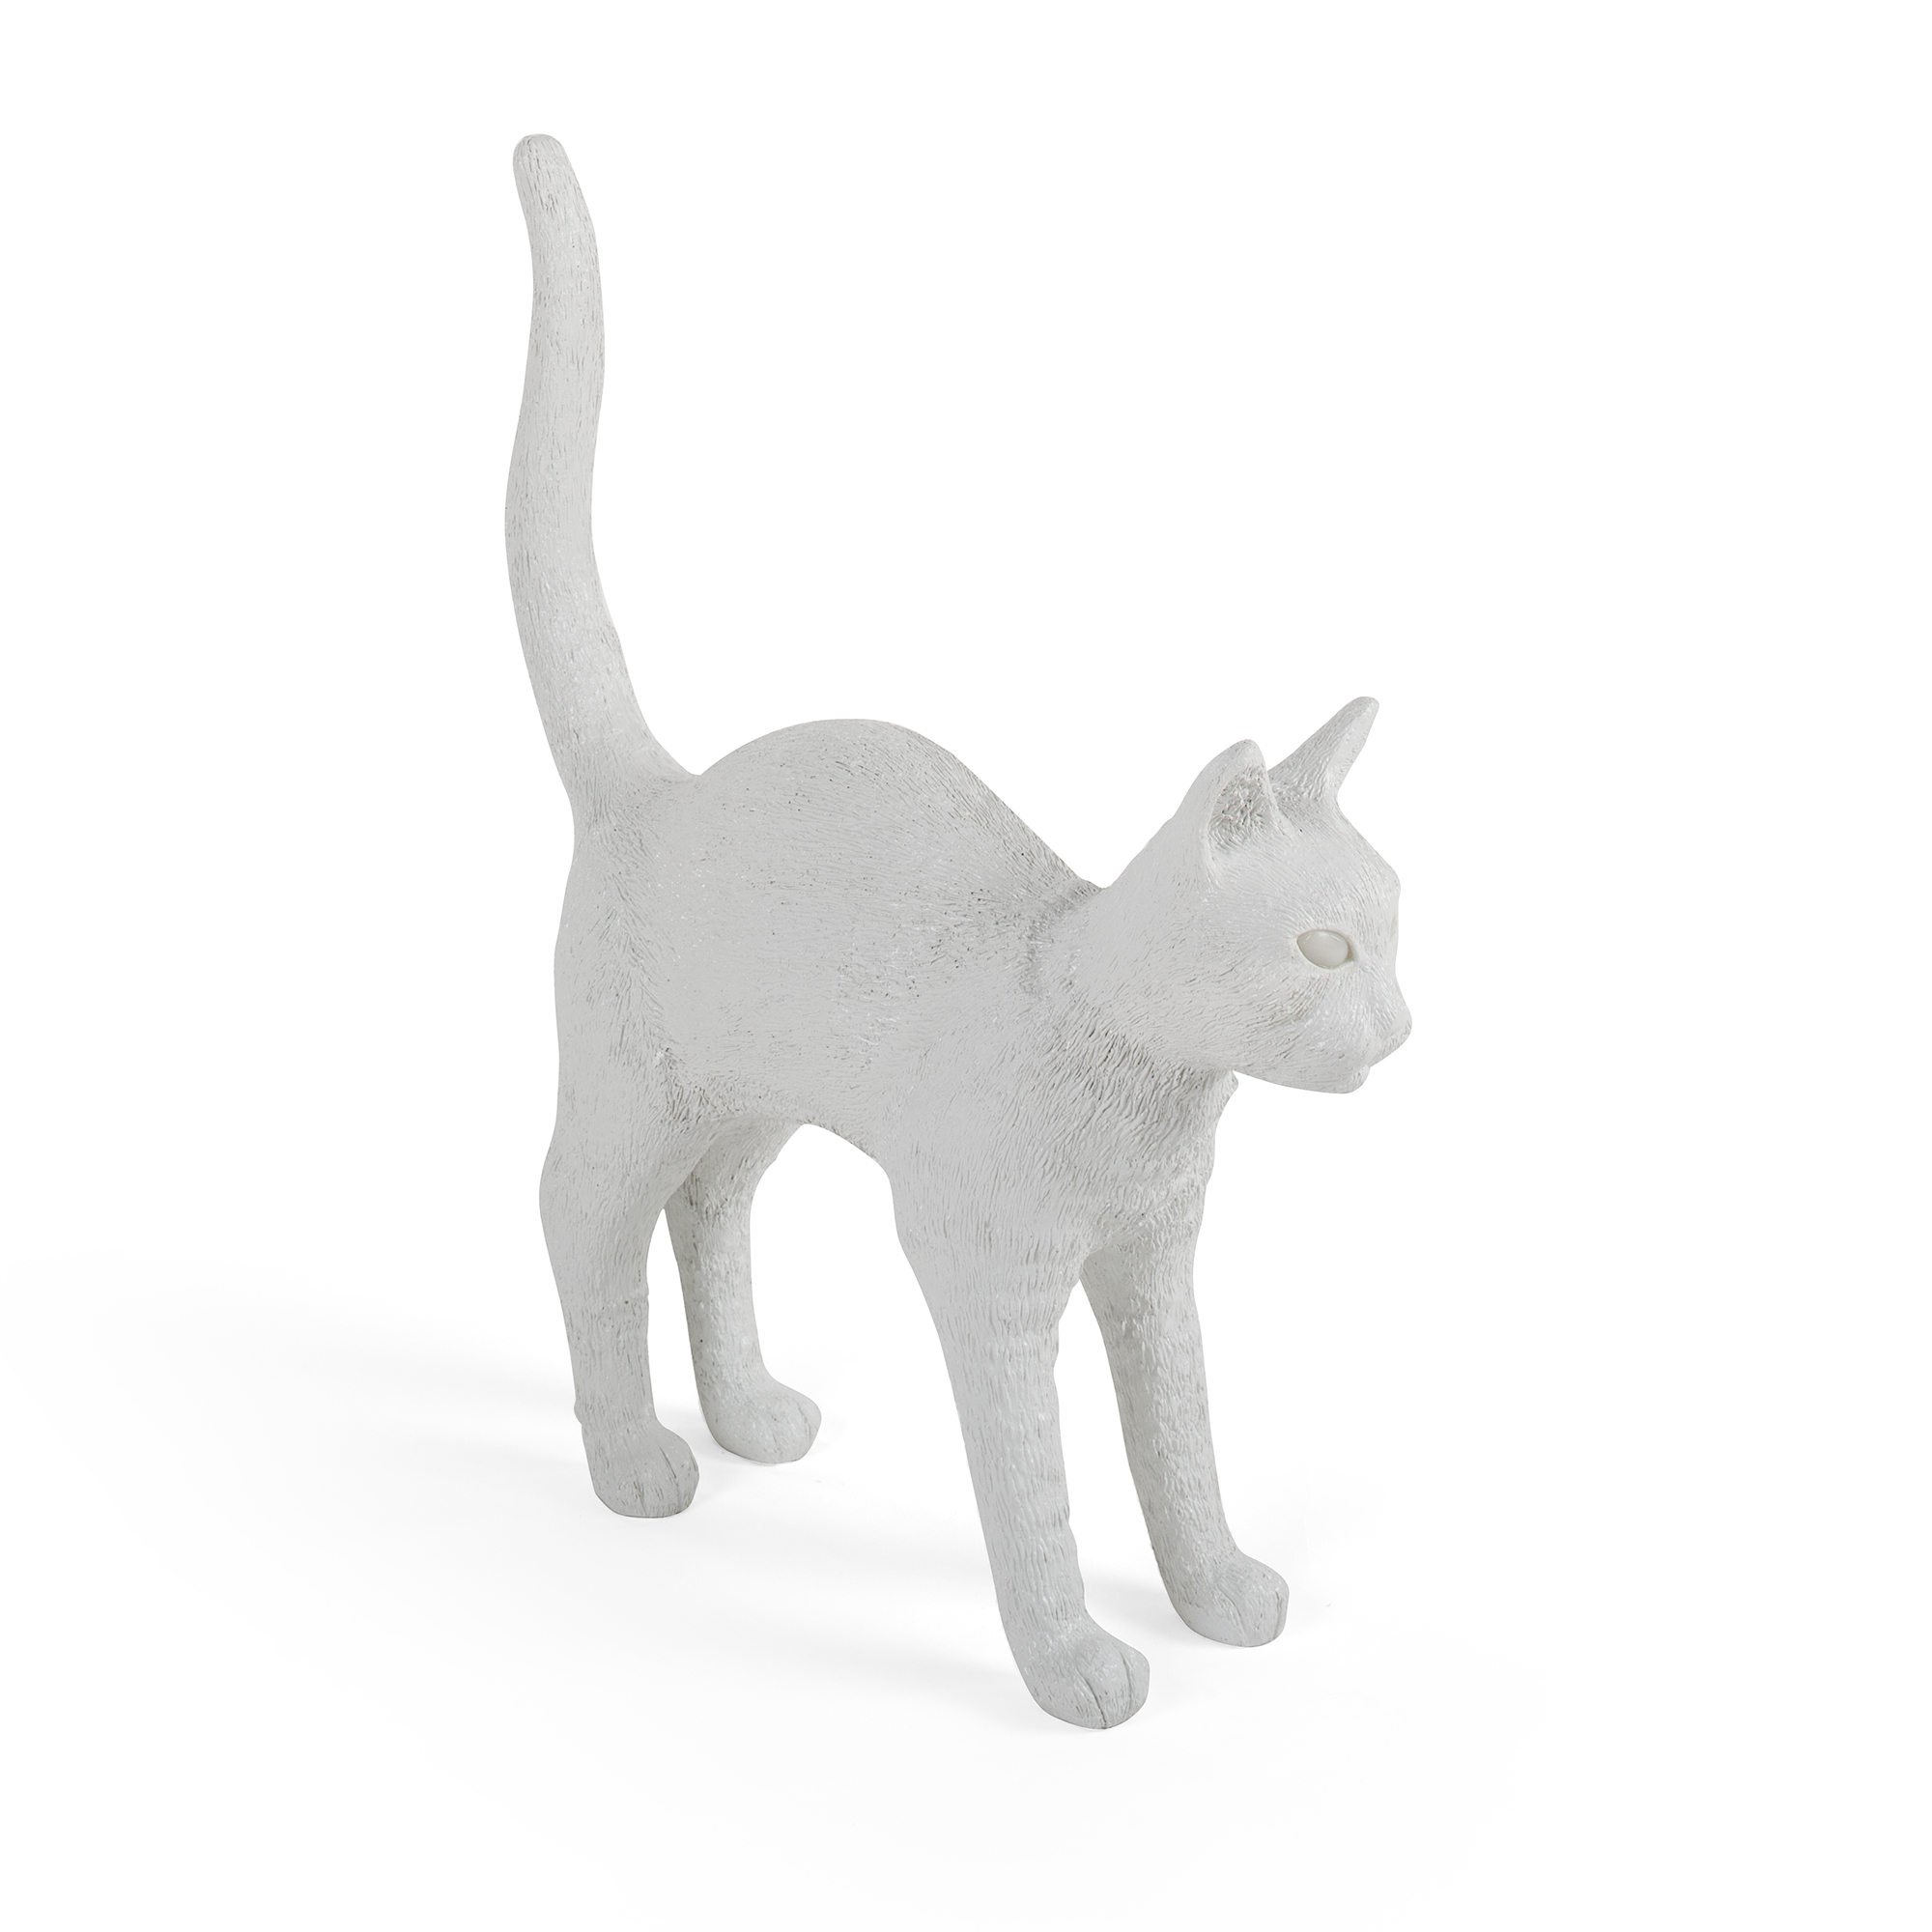 Seletti Lamp Jobby The Cat White Racurs